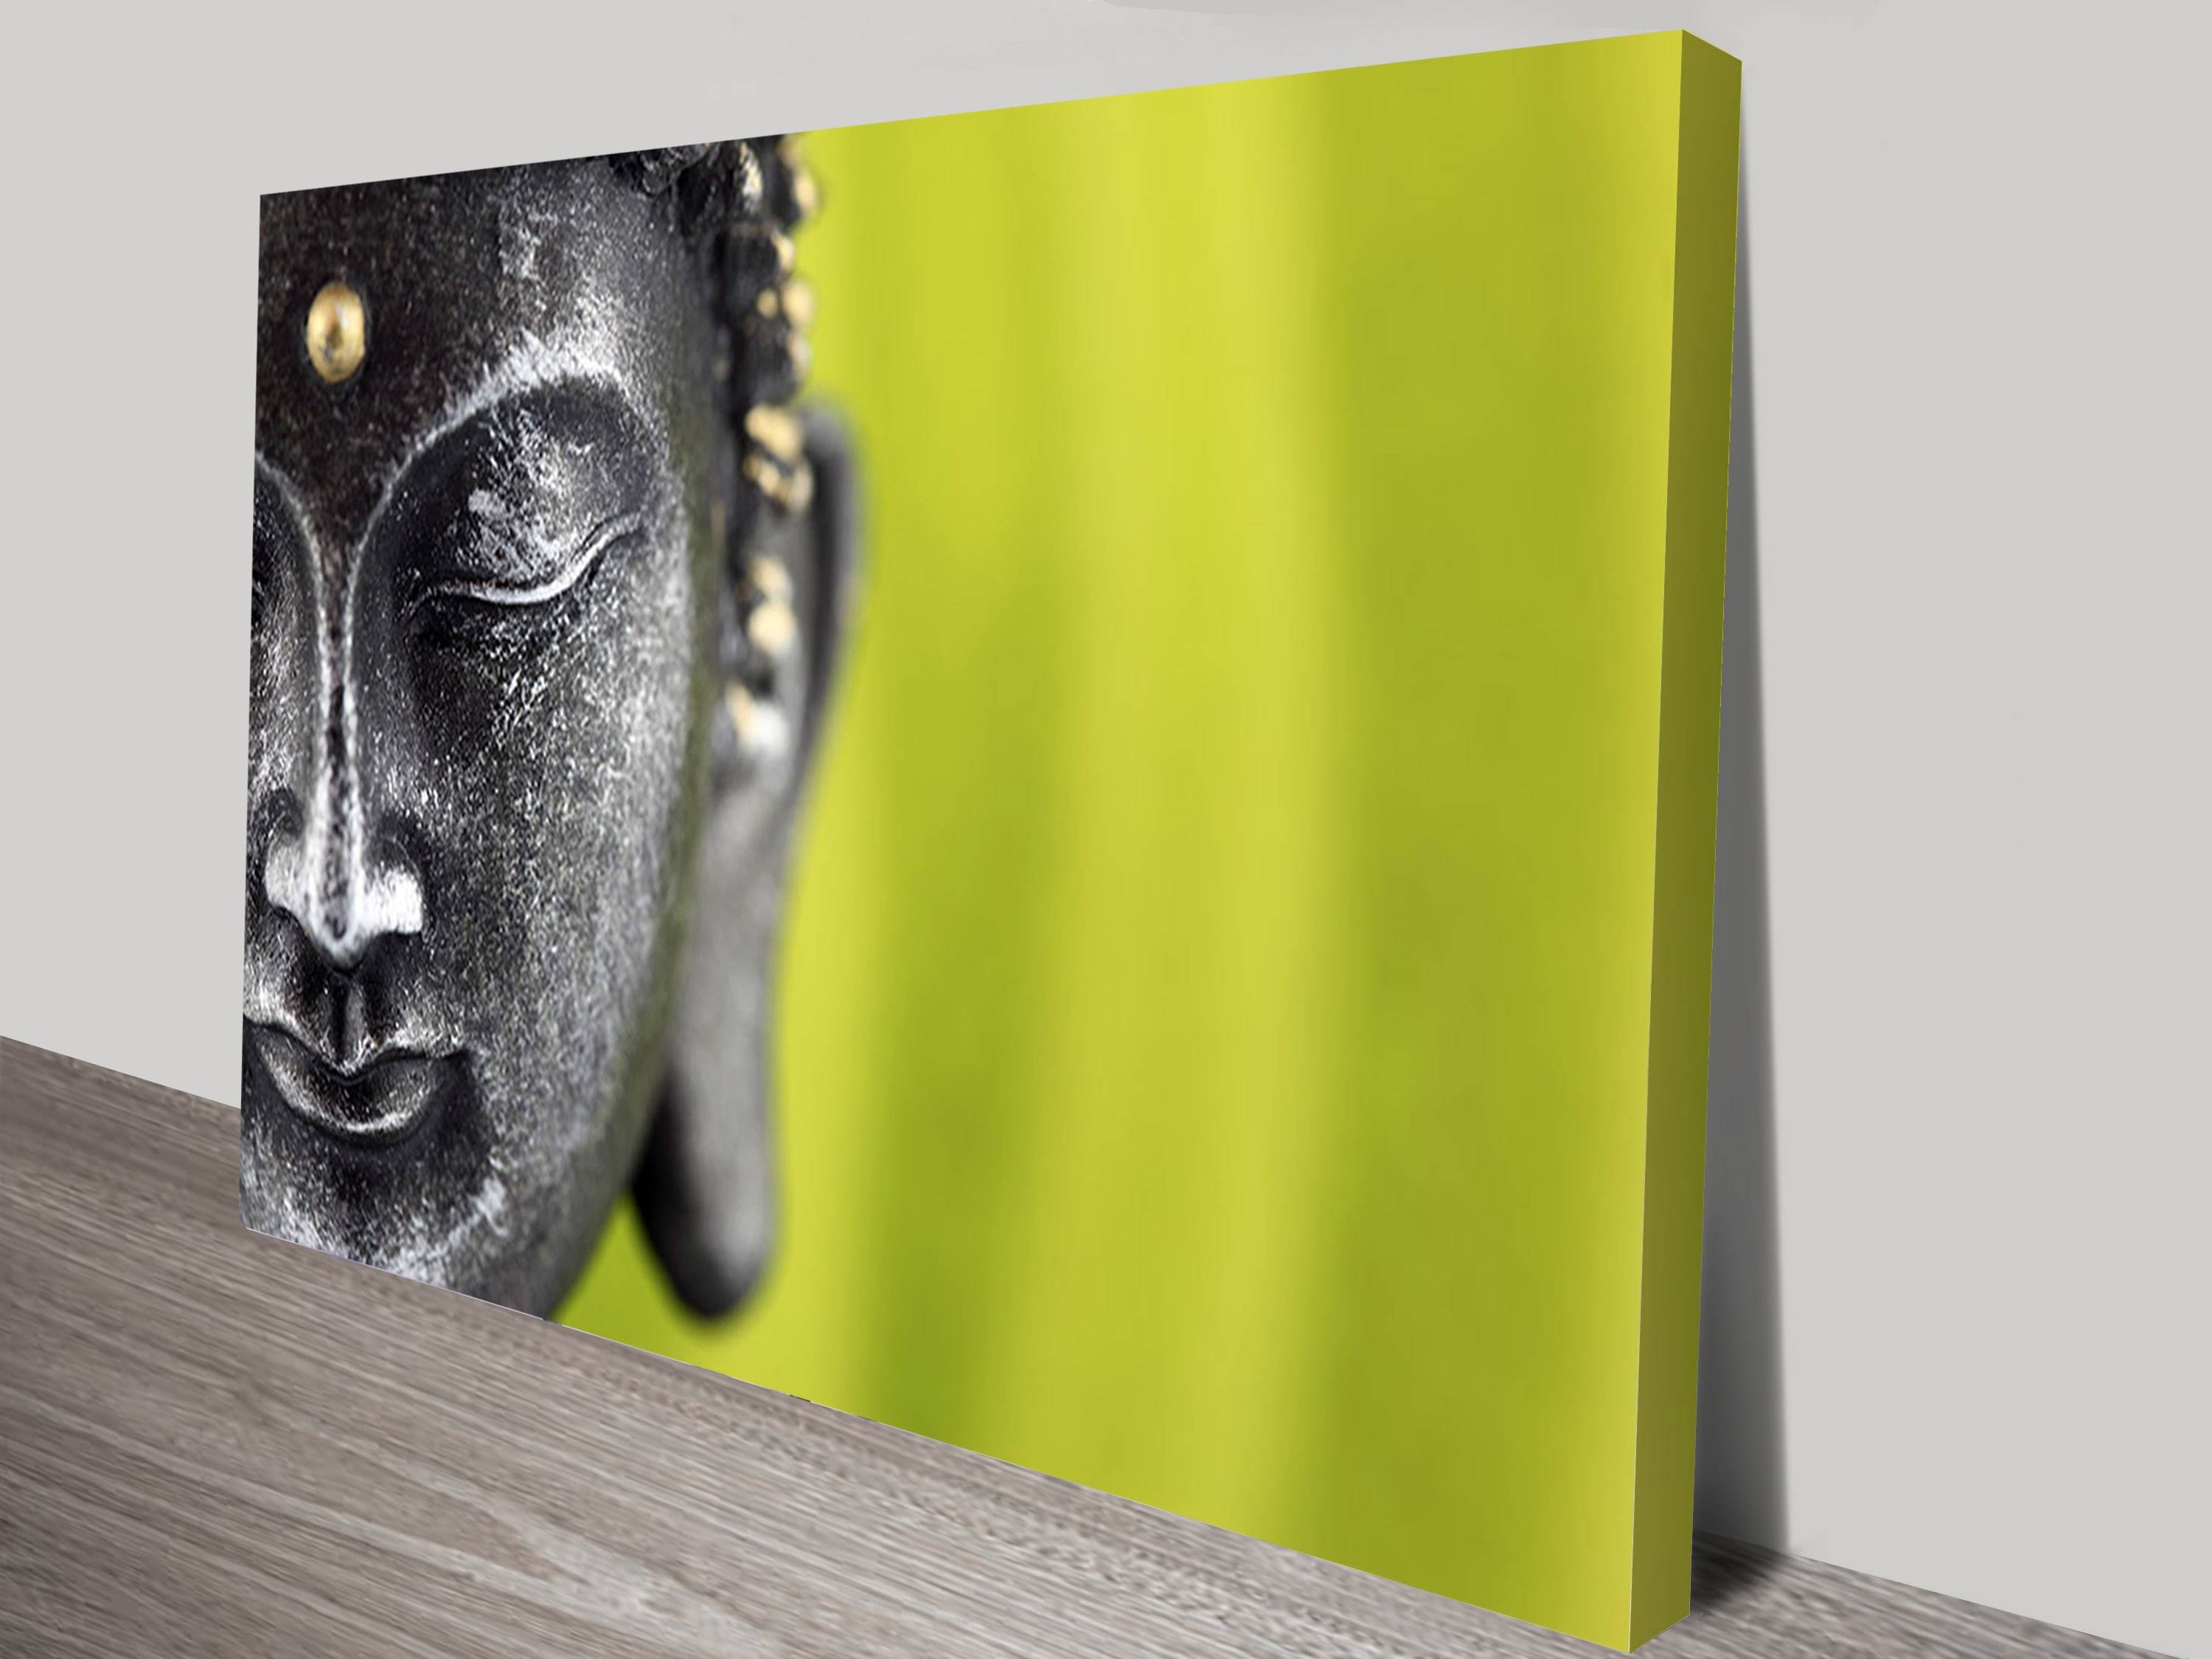 Buy Spirituality & Buddha Wrapped Canvas Prints & Wall Art Online Within Current Silver Buddha Wall Art (View 10 of 15)